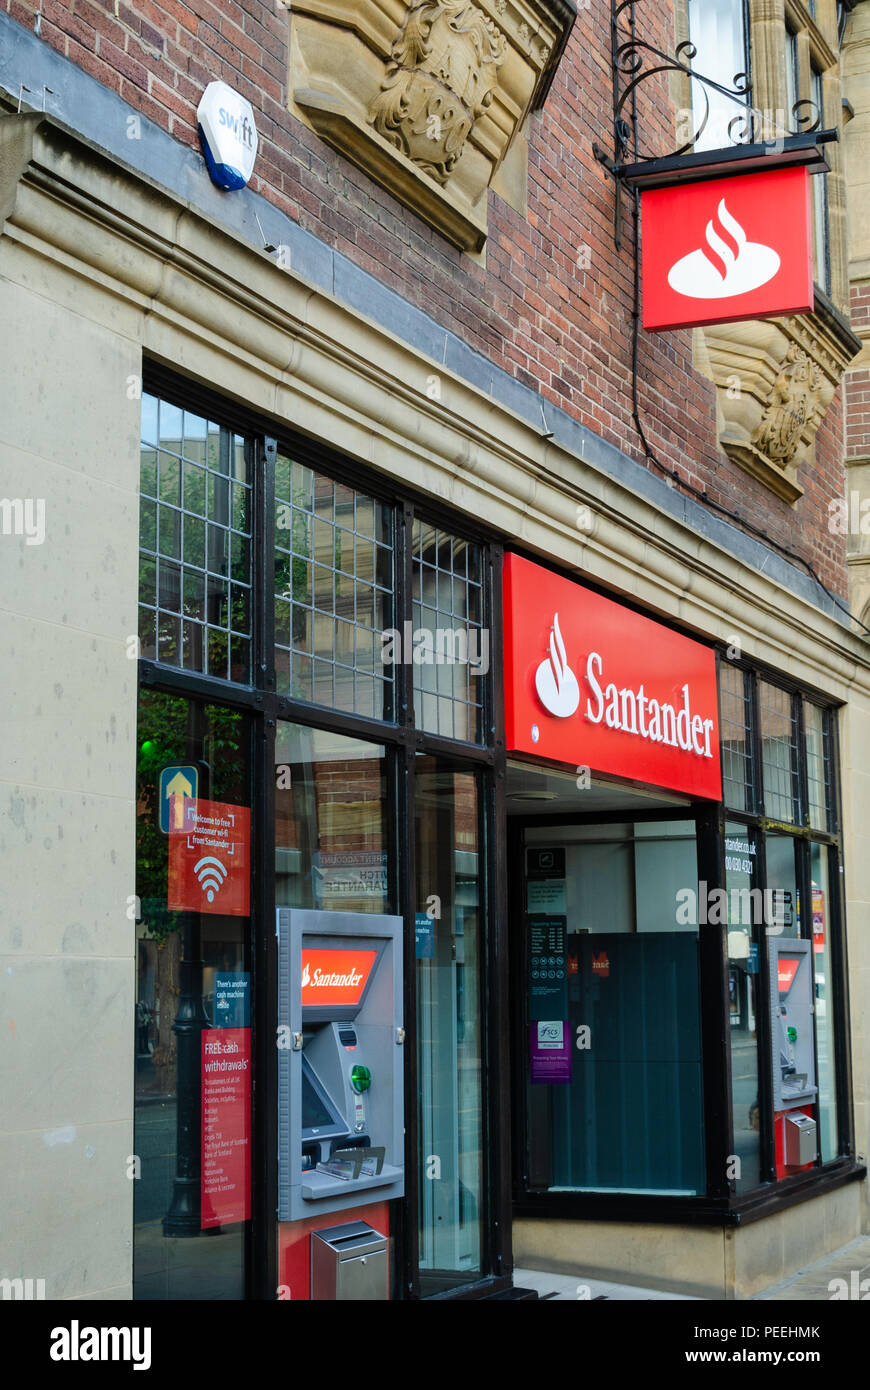 Chester, UK: Aug 6, 2018: A branch of Santander bank in Chester city centre. Santander is a wholly owned subsiduary of the Spanish Santander Group. - Stock Image